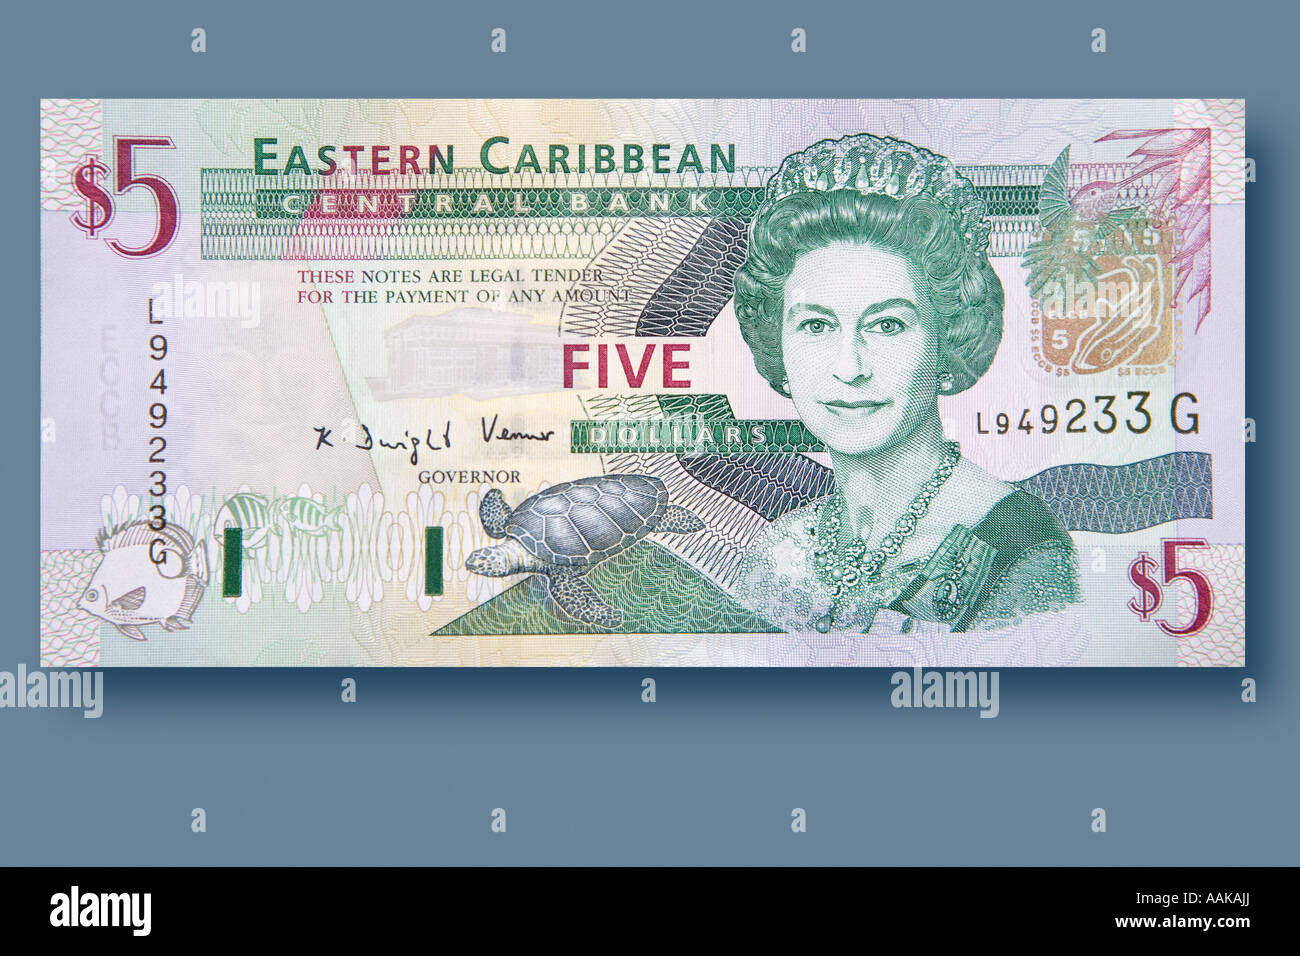 A 5 dollar bill from the EC or Eastern Caribbean. - Stock Image